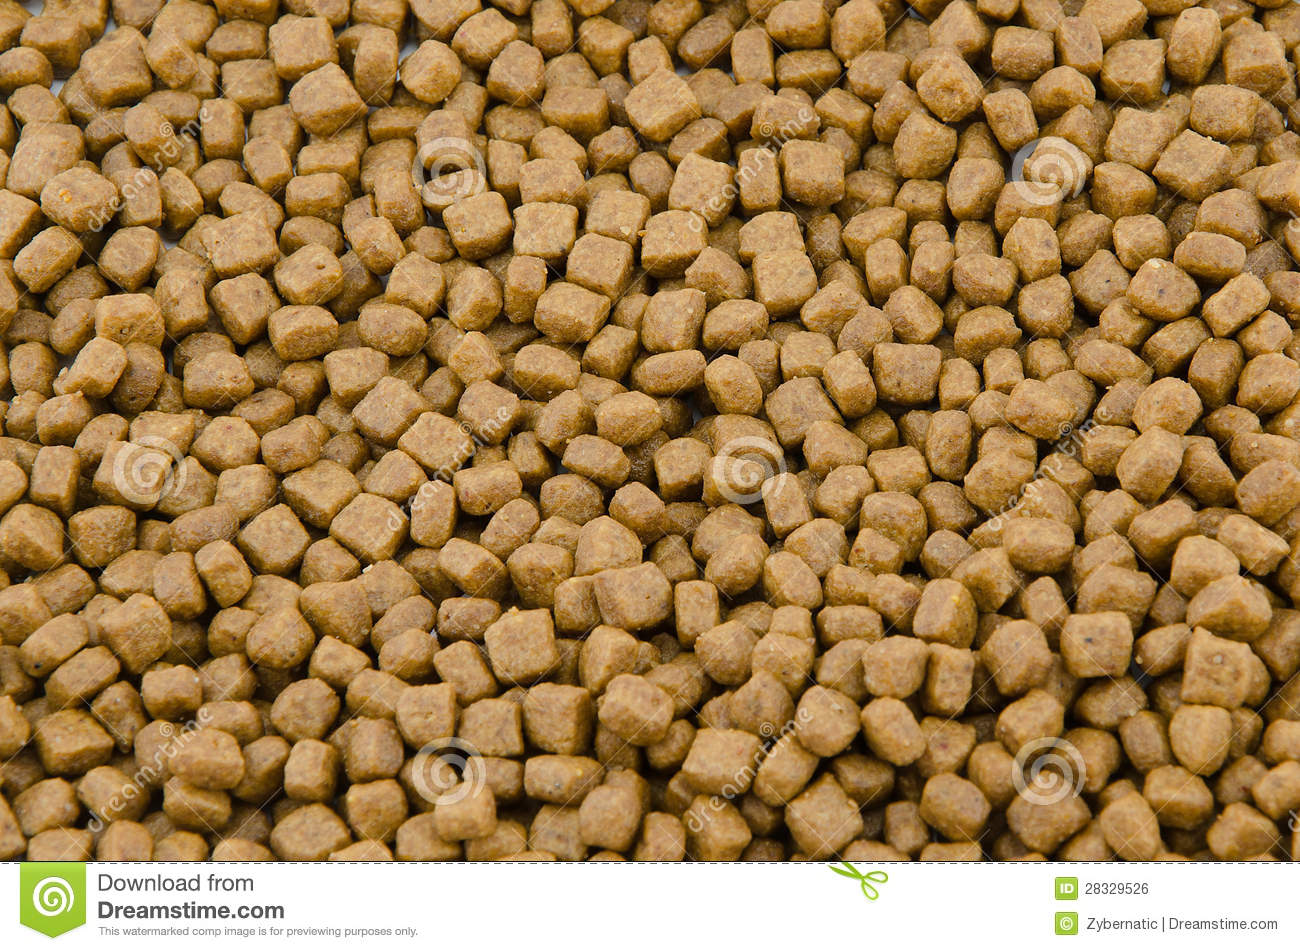 Dry Cat Food Royalty Free Stock Image   Image  28329526